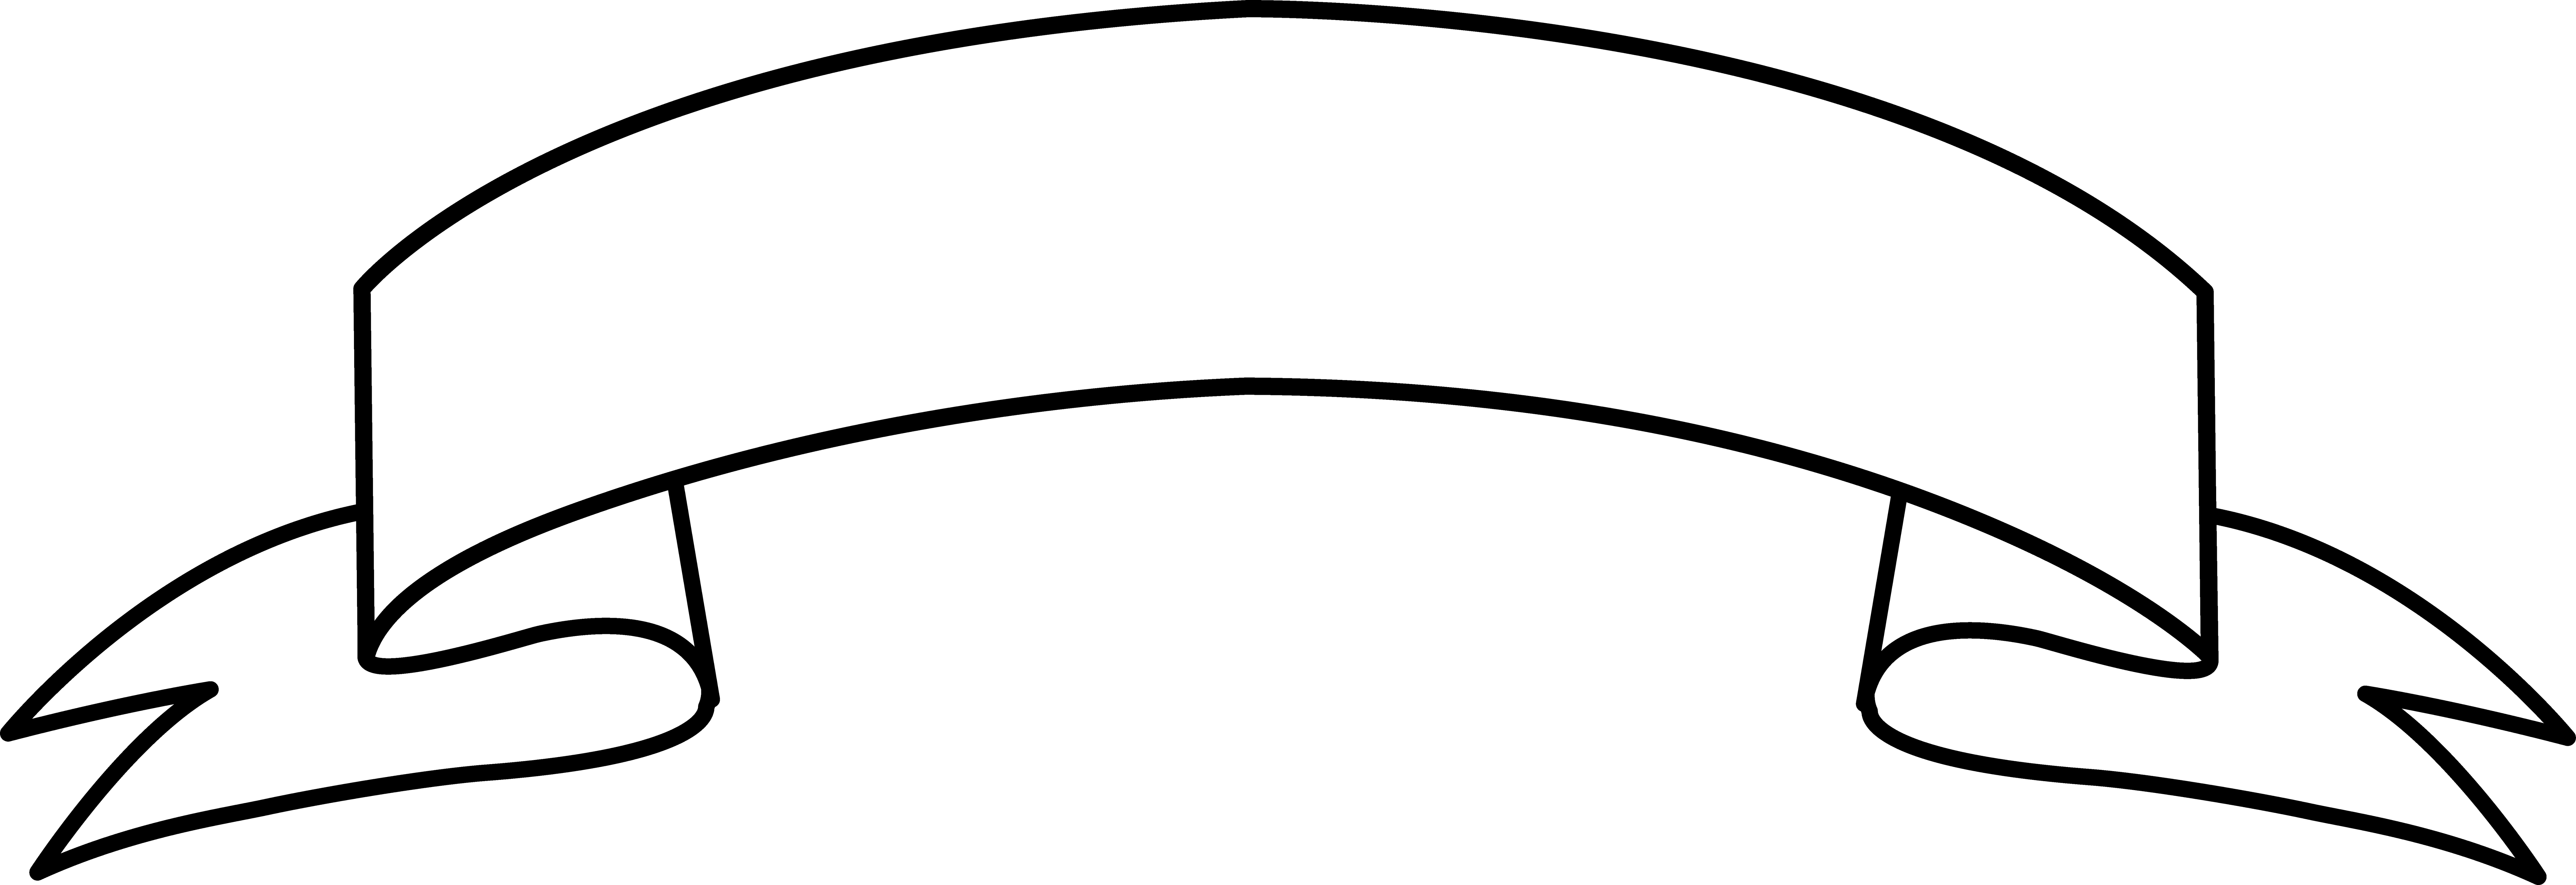 Banner Vector Black And White Png